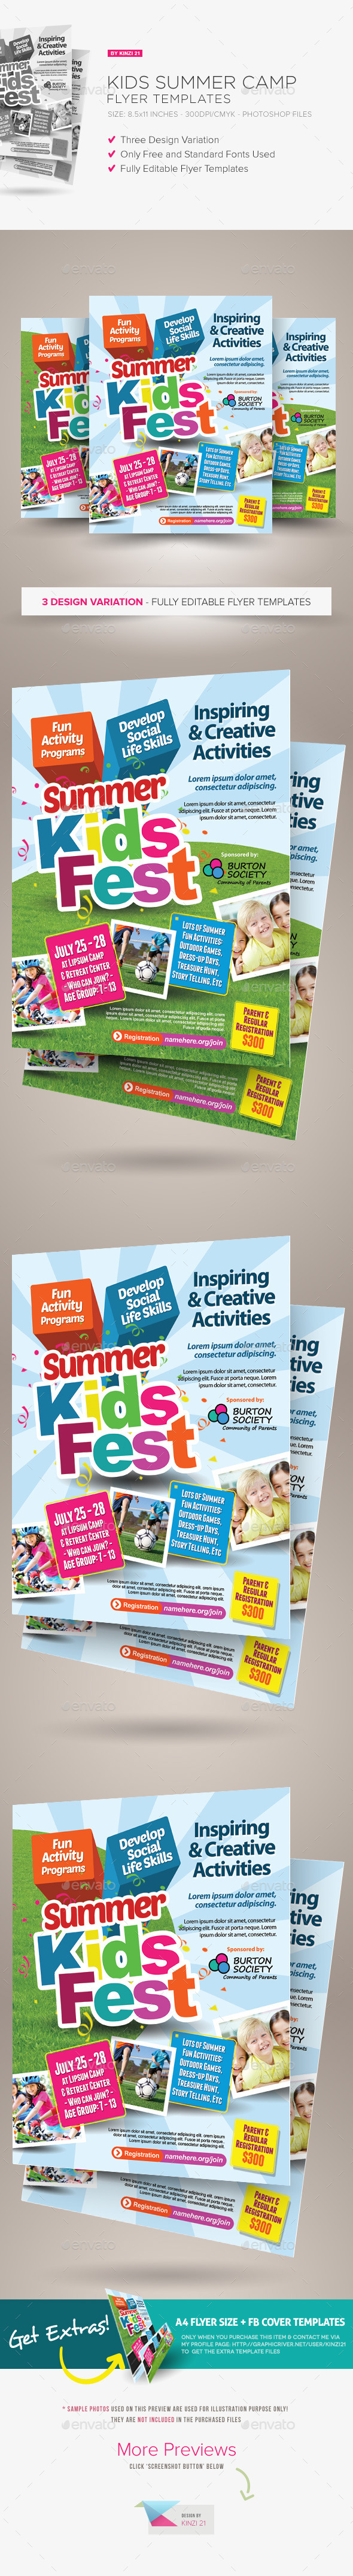 kids summer camp flyers activities camps and holiday kids summer camp flyers activity ad adventure advert advertisement boys